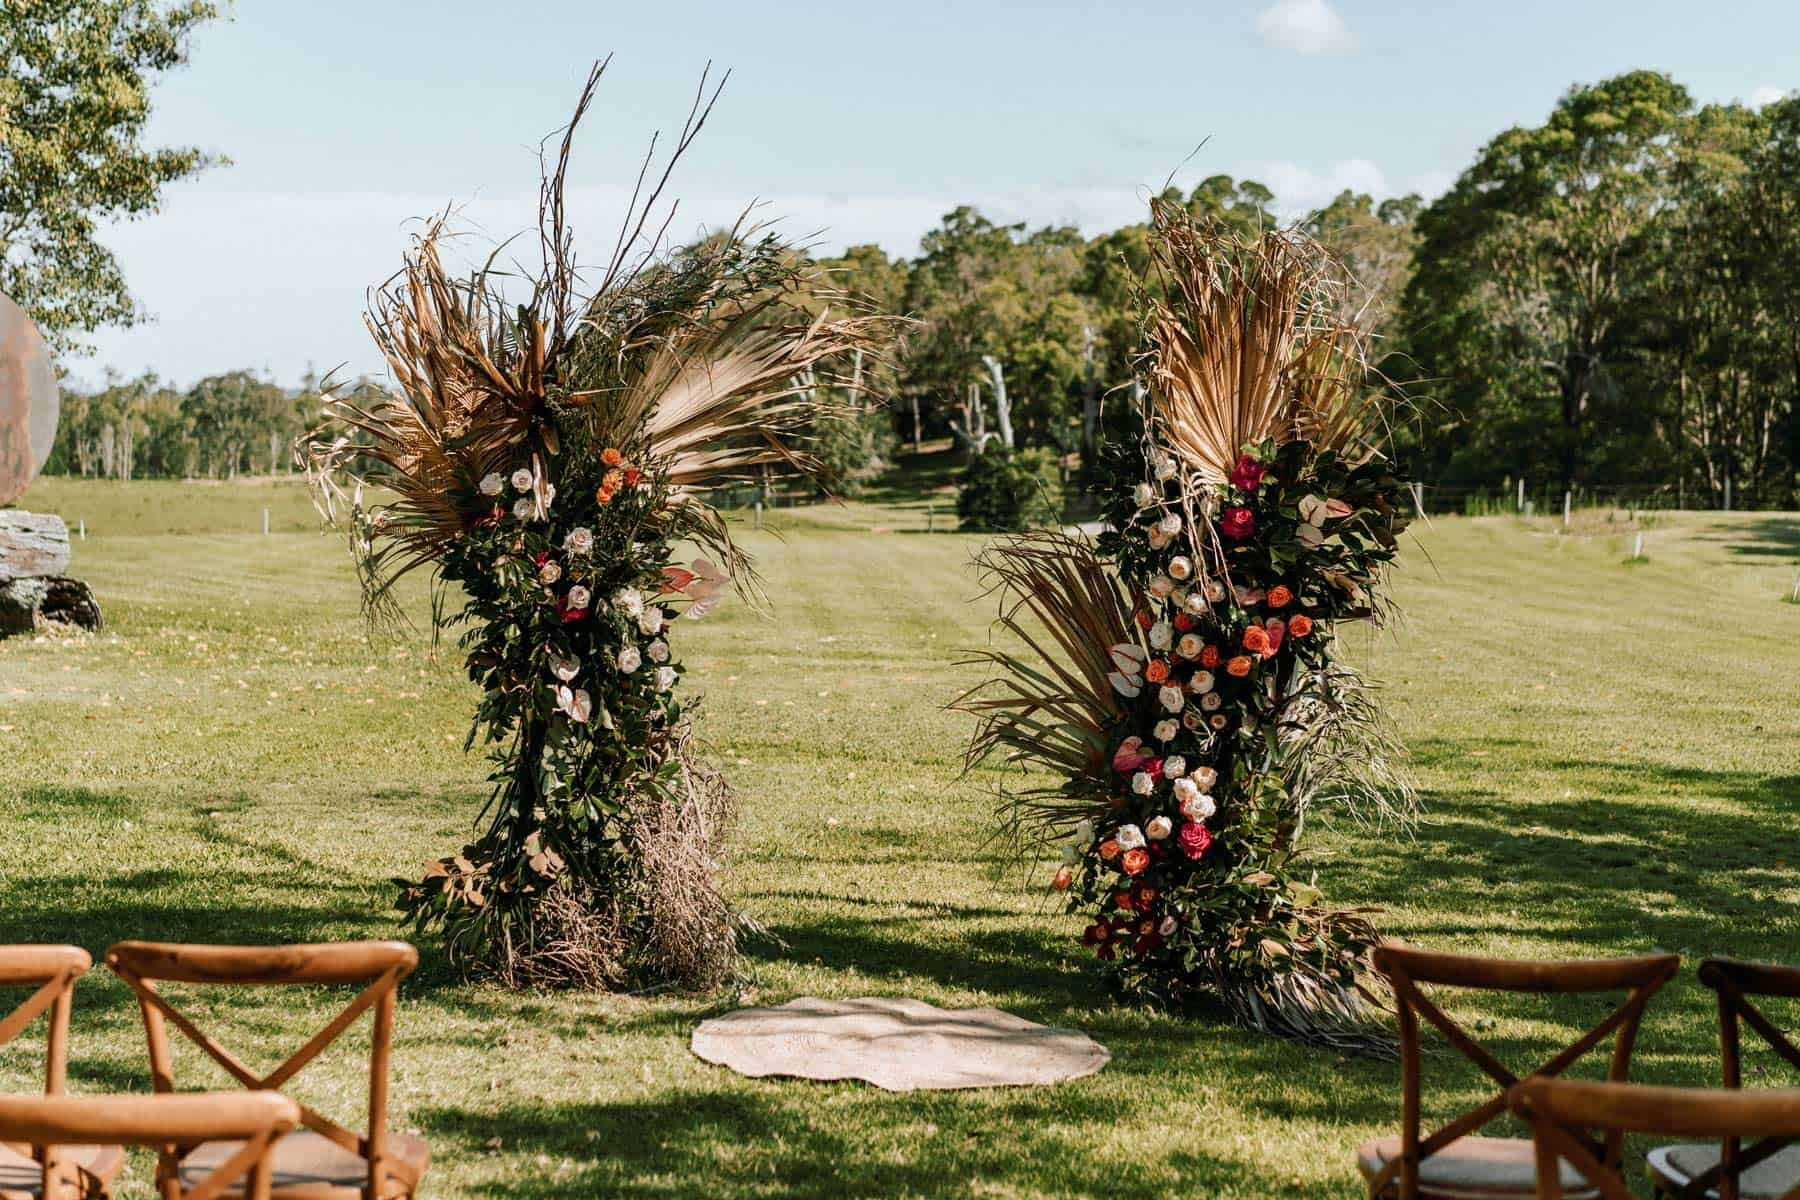 floral arch with dried palm leaves